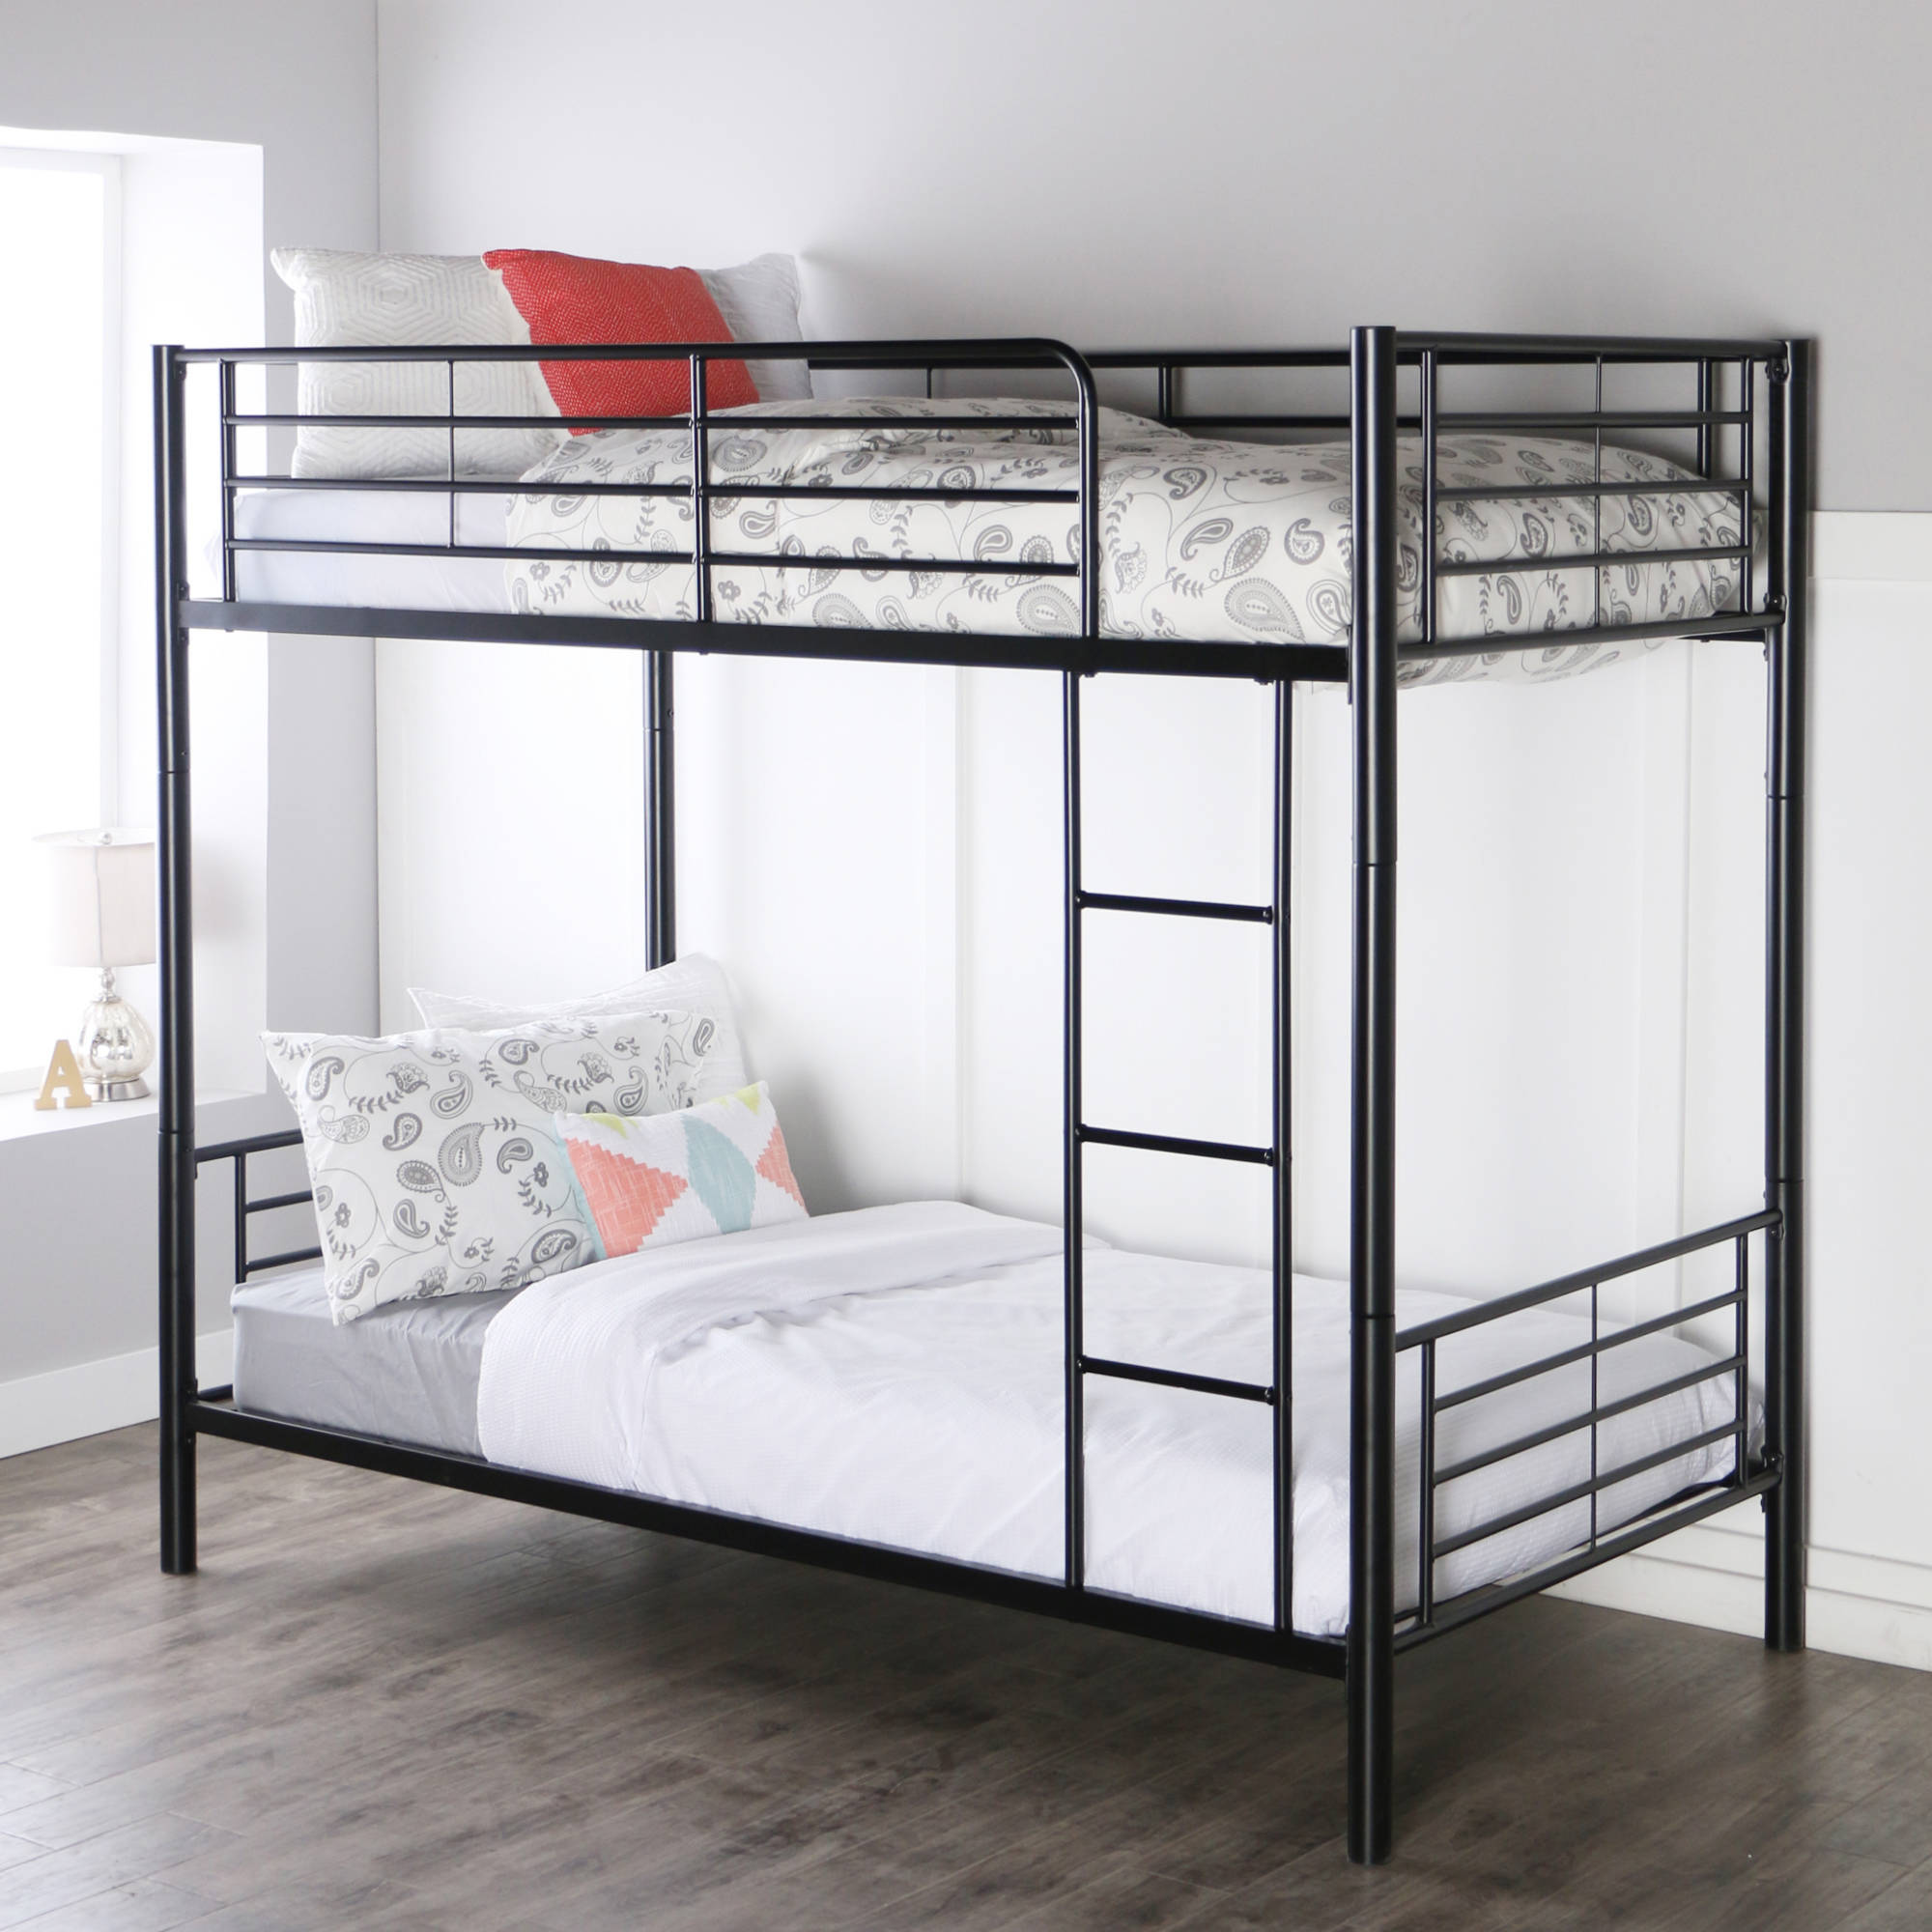 Picture of: 2019 Kening Dormitory Bed Steel Bunk Bed Twin Metal Bed At Factory Price Buy Dormitory Bed Bunk Bed Double Level Bed Metal Bed Strong Bunk Bed Product On Alibaba Com